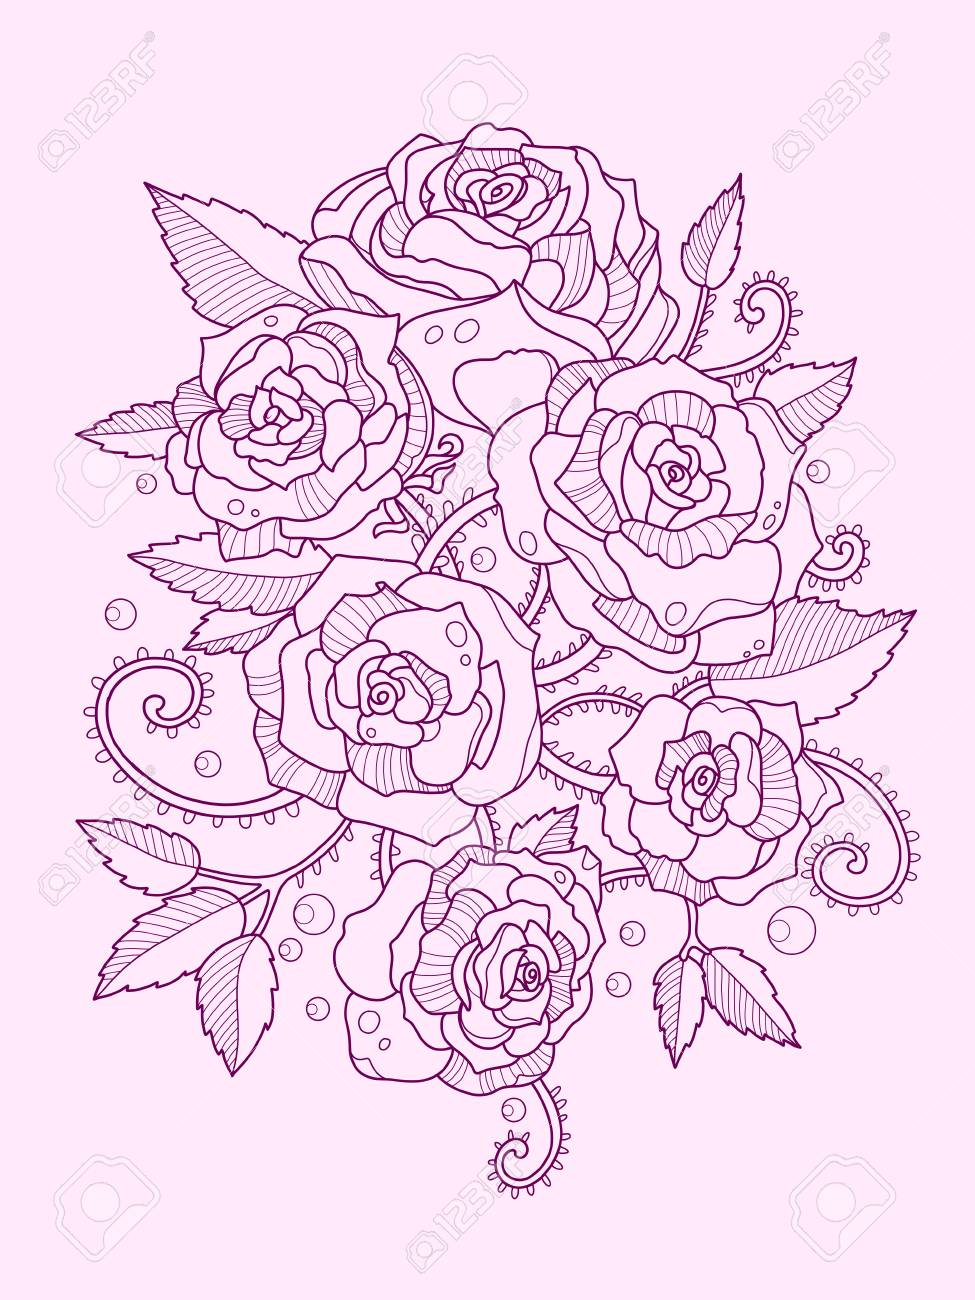 975x1300 Rose Flower Color Drawing Vector Illustration. Tattoo Stencil